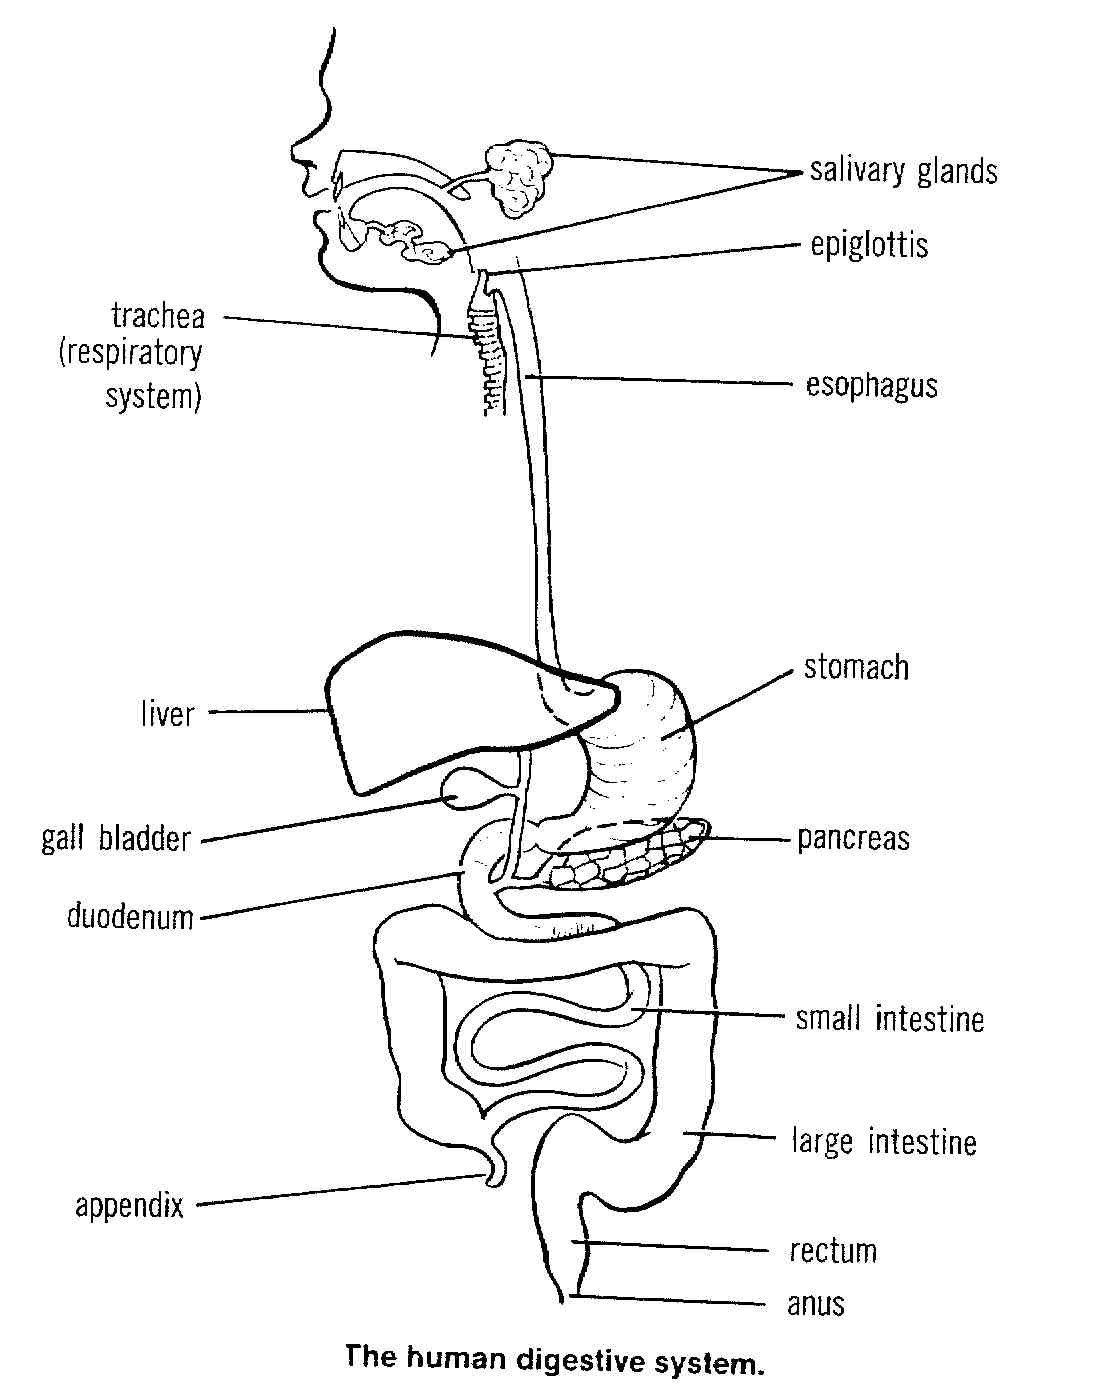 Digestive System Coloring Worksheet Free Coloring Pages